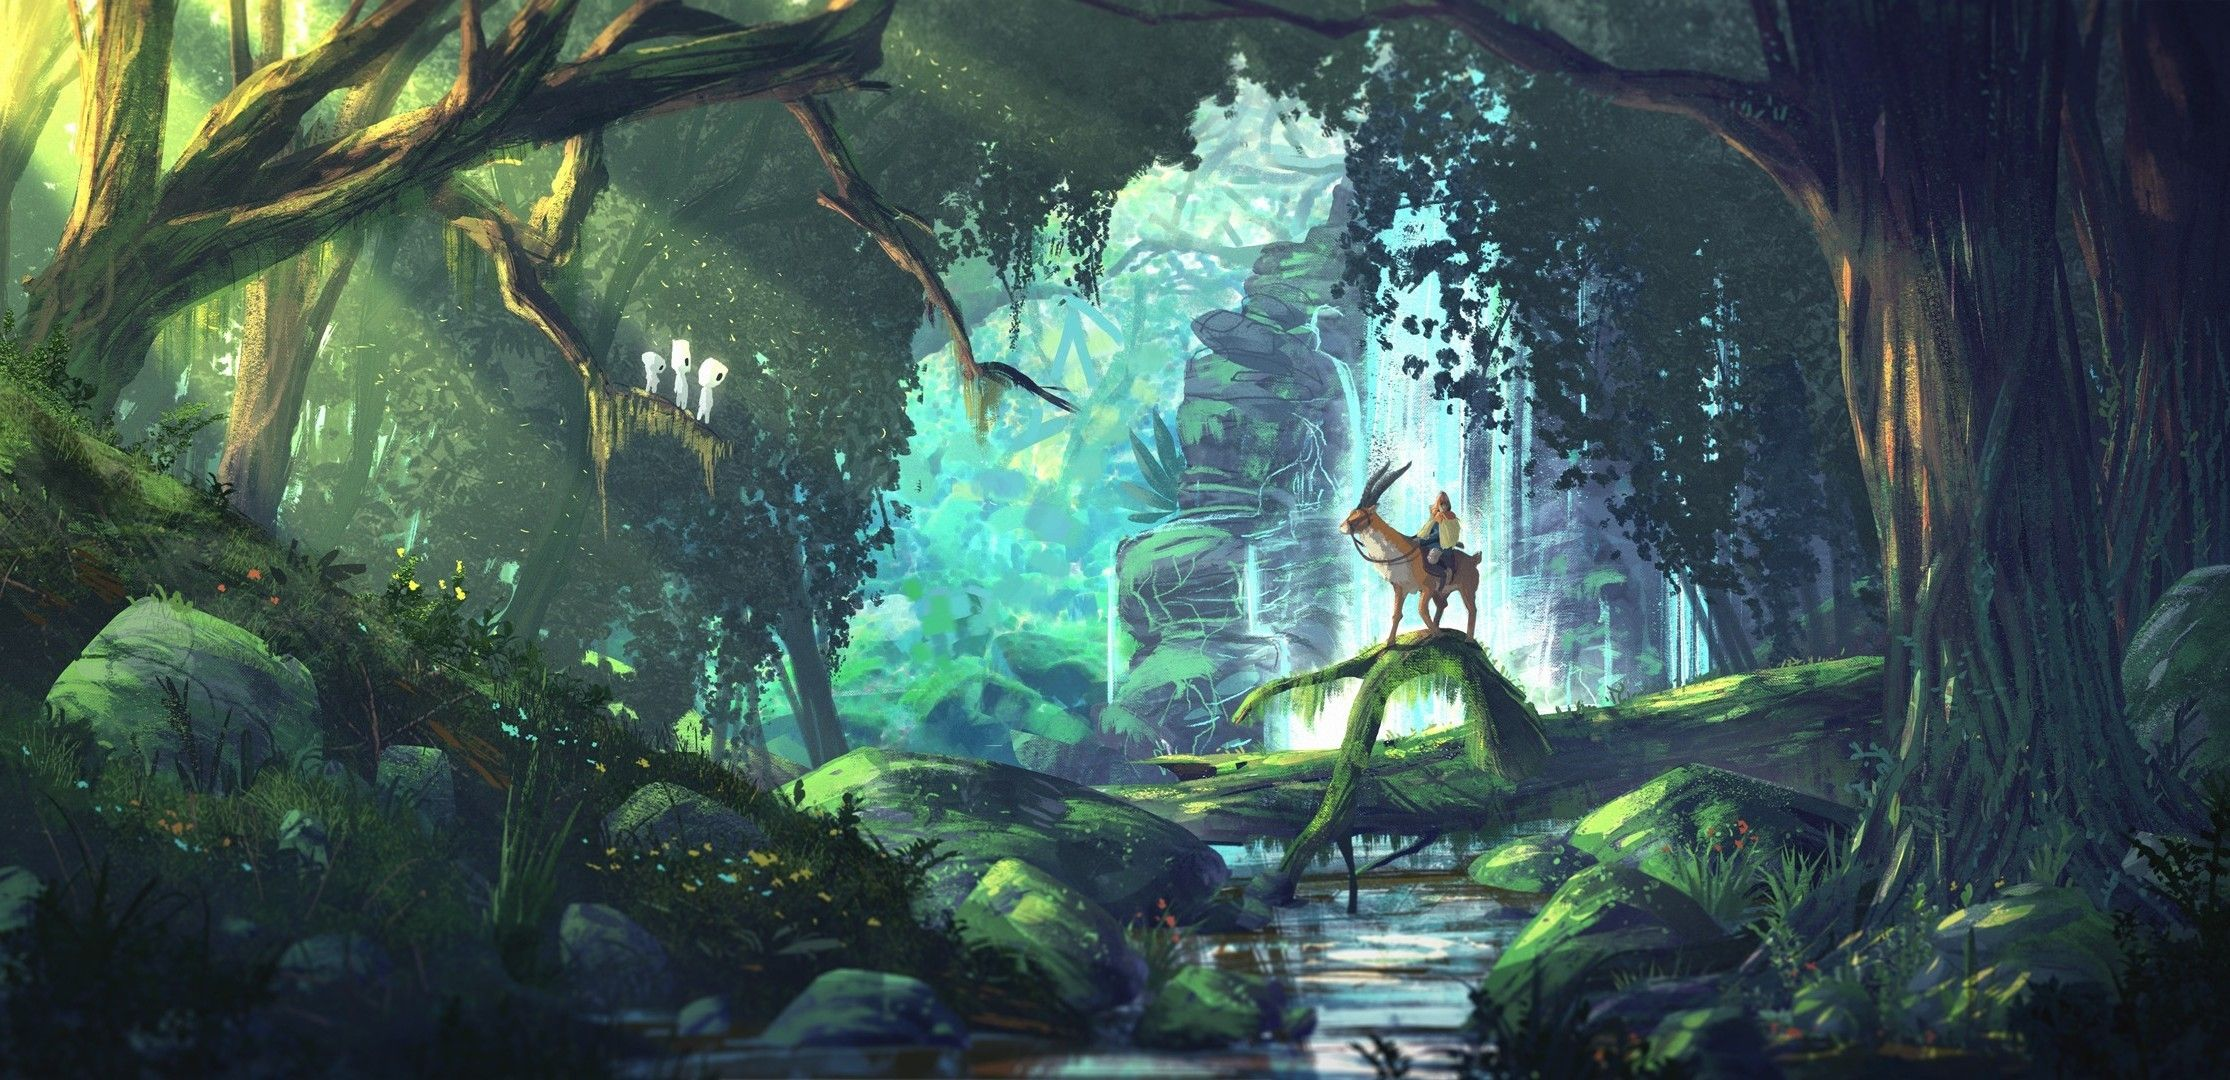 2230x1080 fantasy Art, Anime, Forest, Princess Mononoke